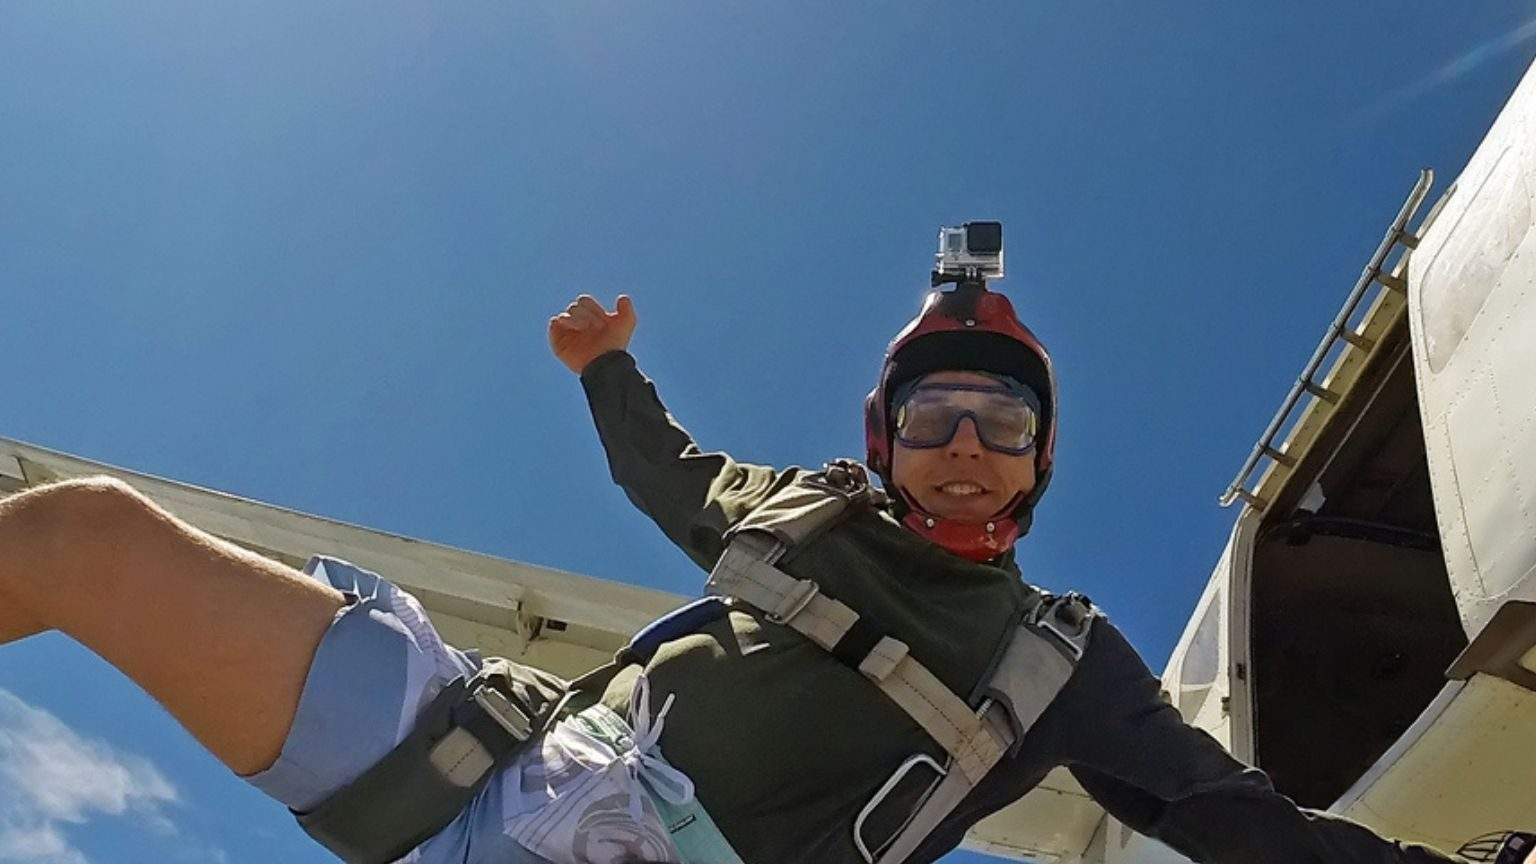 Boy jumping from the plane